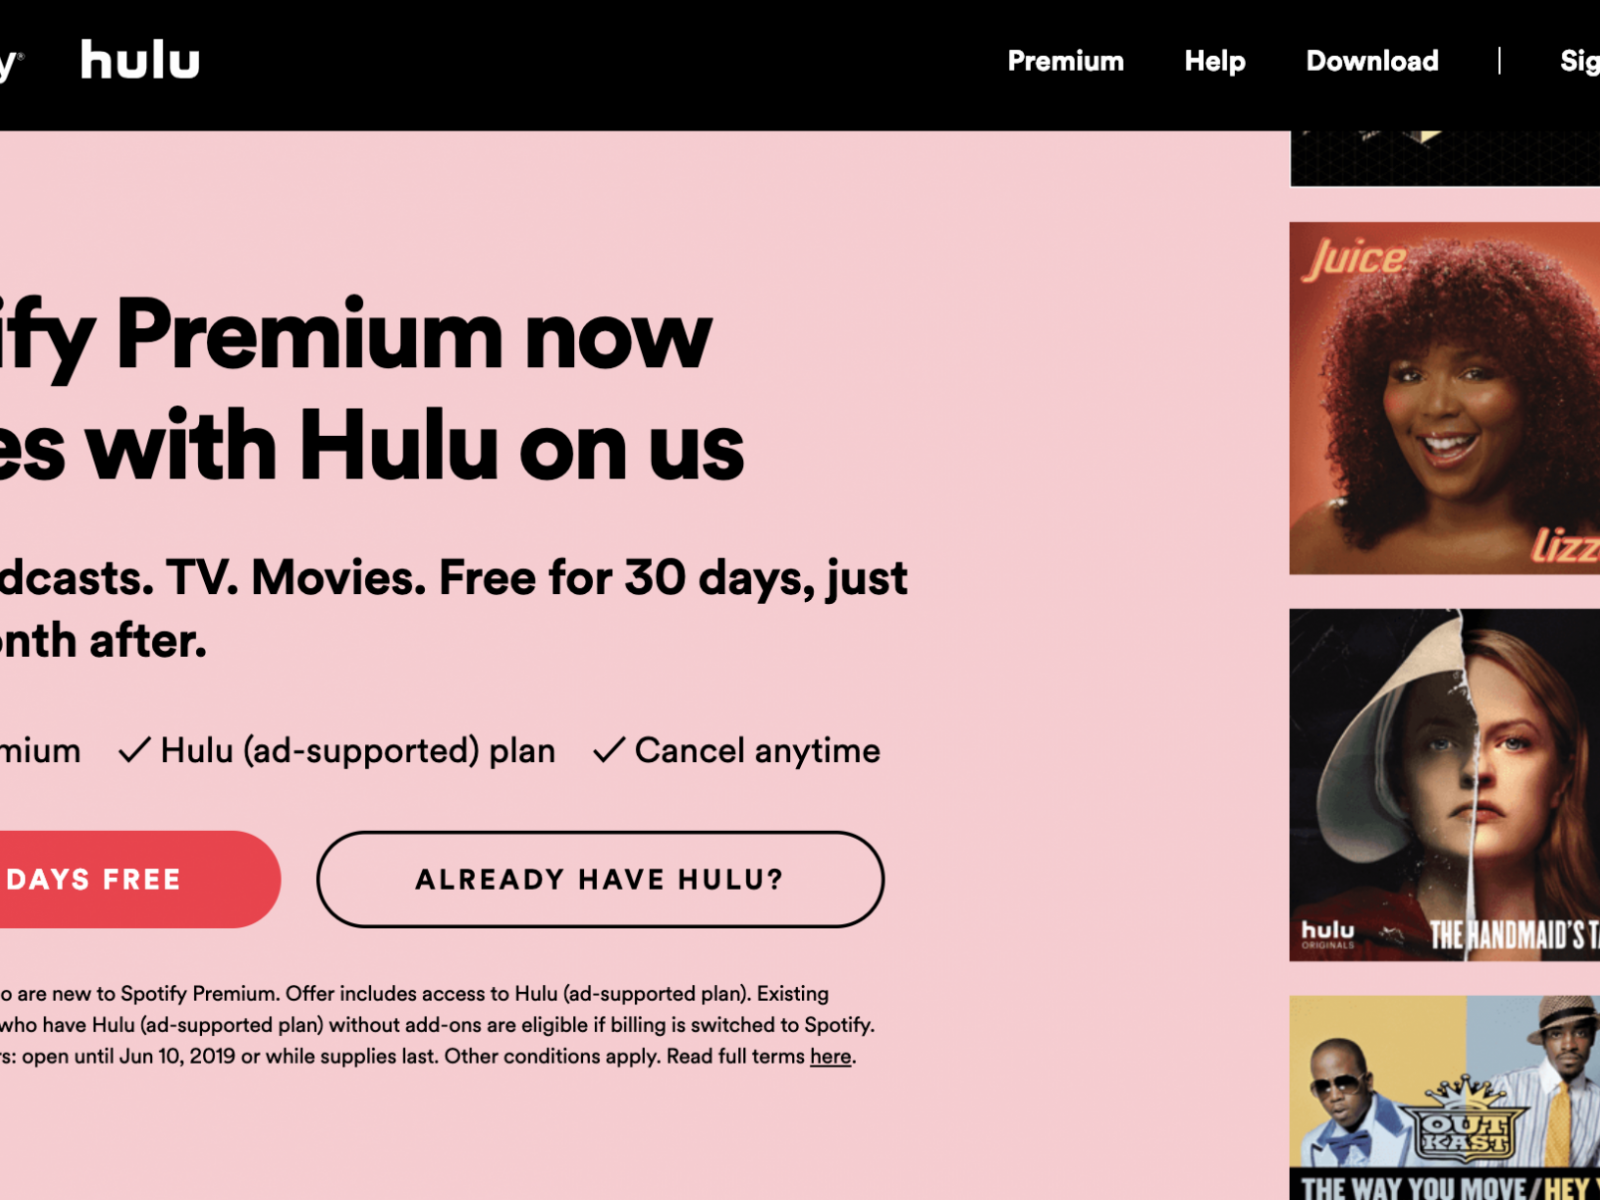 Hulu Spotify Bundle: How to Sign Up for Free Hulu with Premium